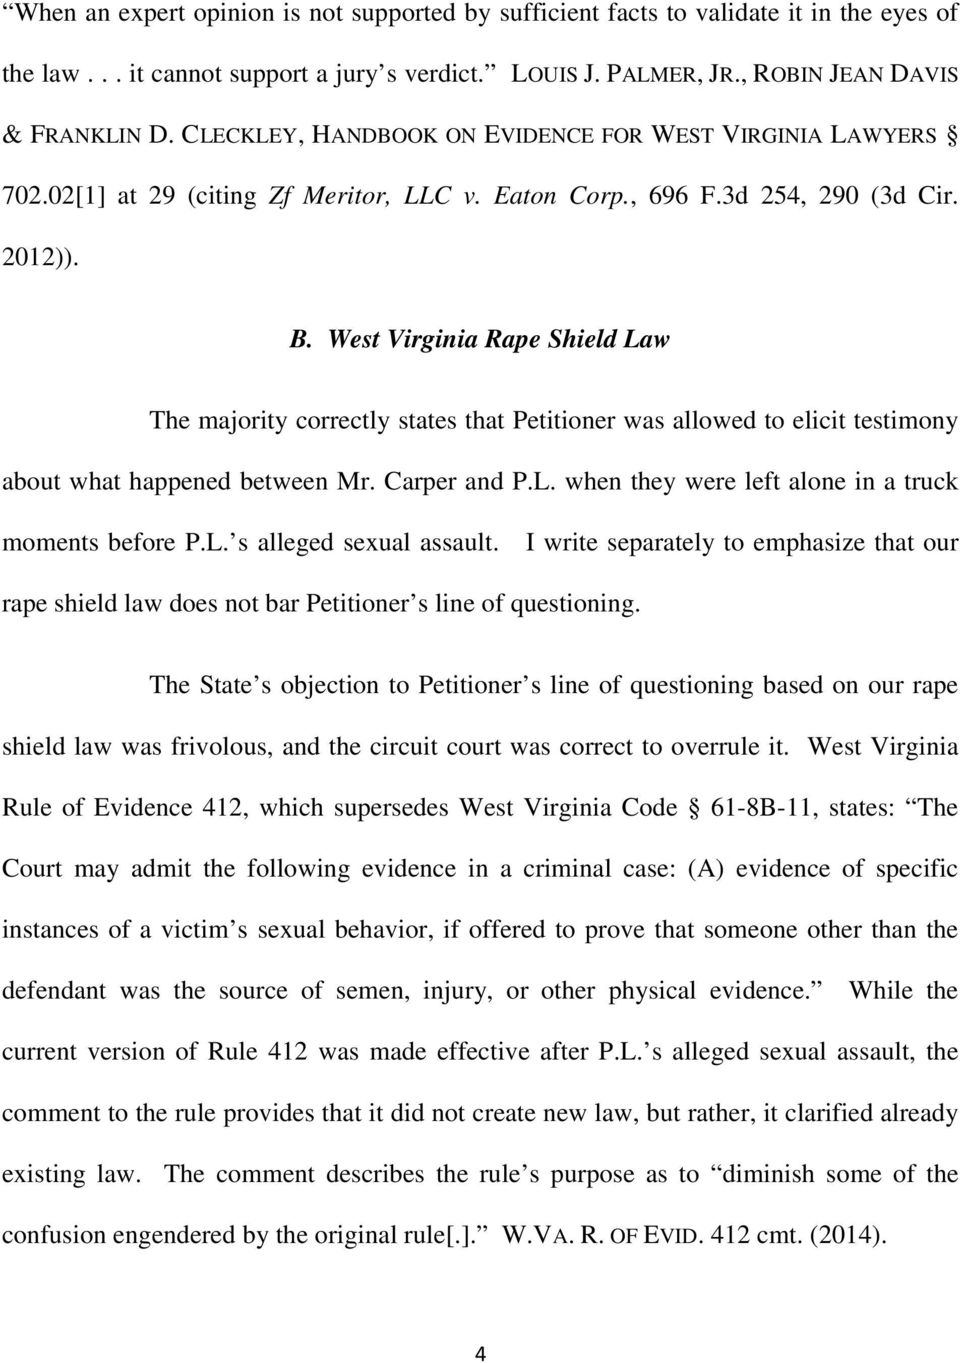 West Virginia Rape Shield Law The majority correctly states that Petitioner was allowed to elicit testimony about what happened between Mr. Carper and P.L. when they were left alone in a truck moments before P.